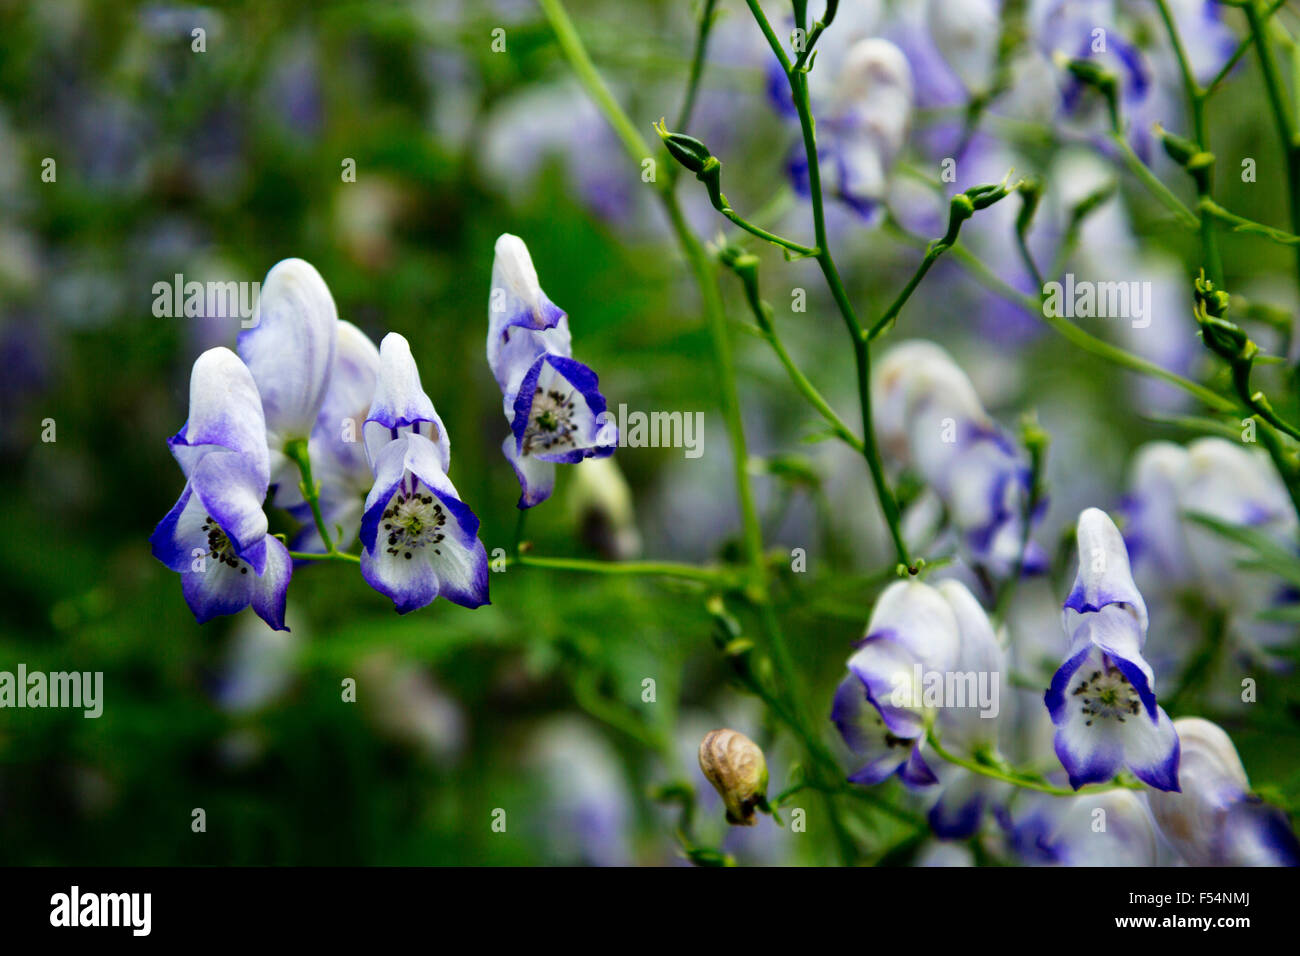 Toxic Plant Of Monkshood Stock Photos Toxic Plant Of Monkshood